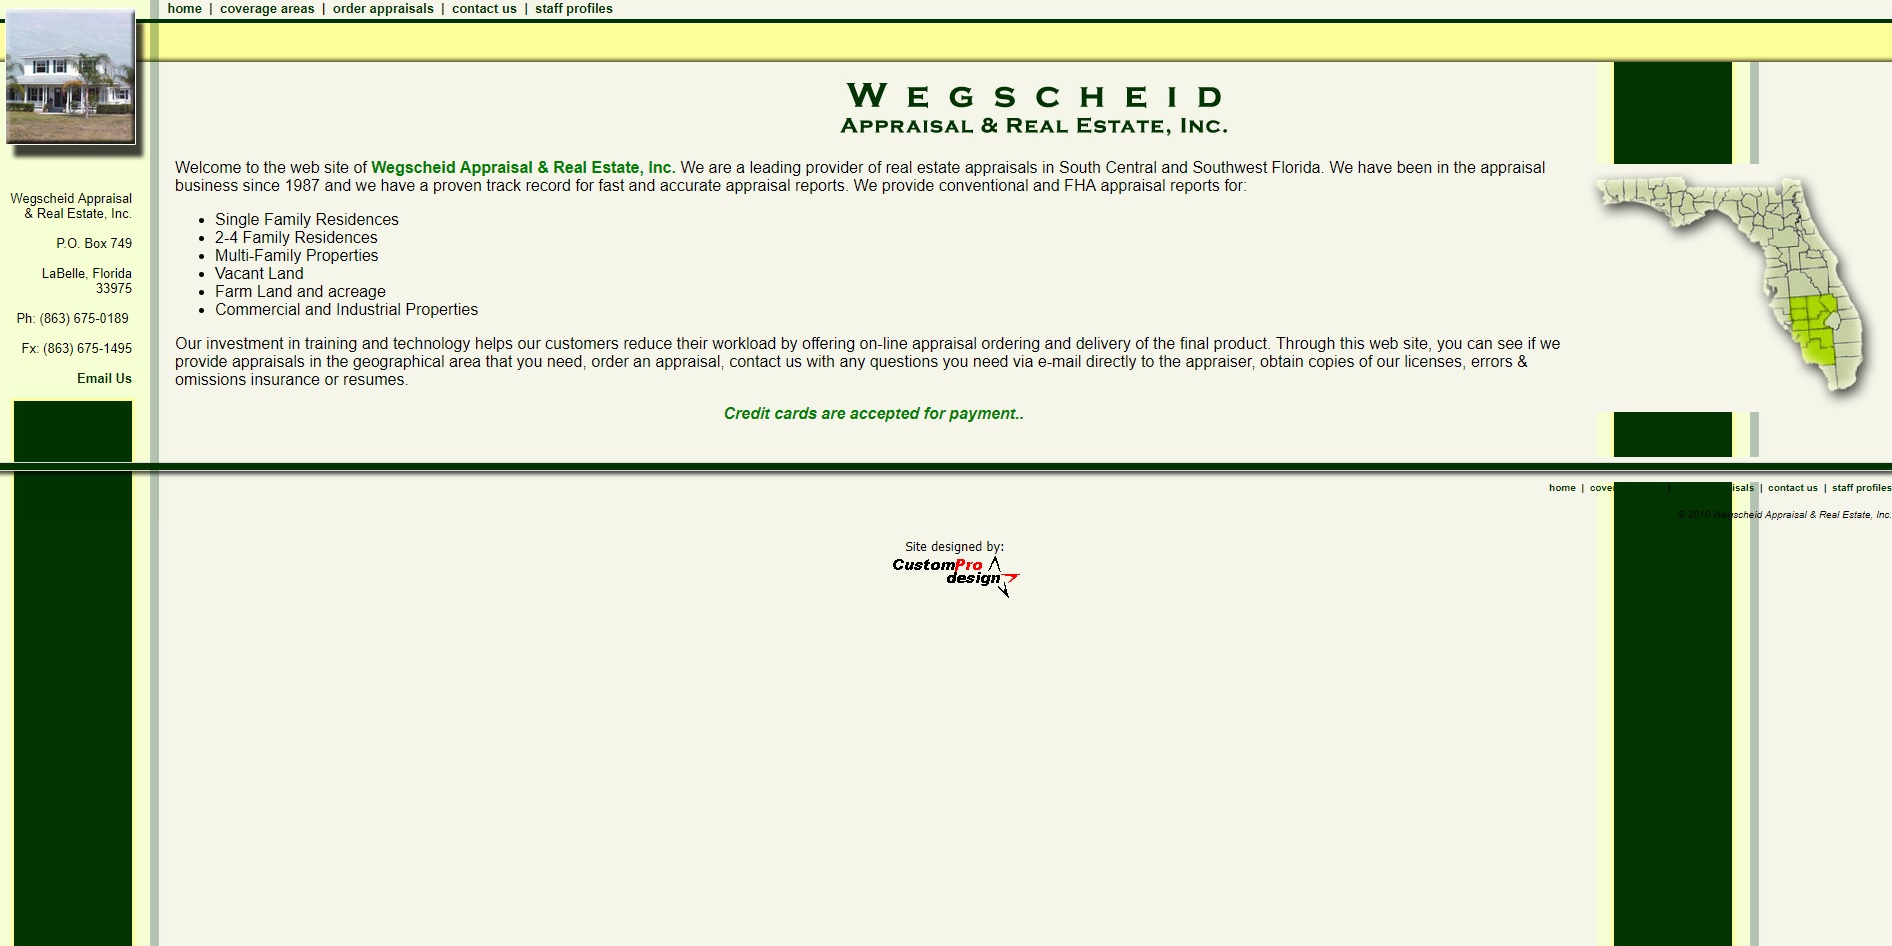 Wegschield Appraisal & Real Estate, Inc.